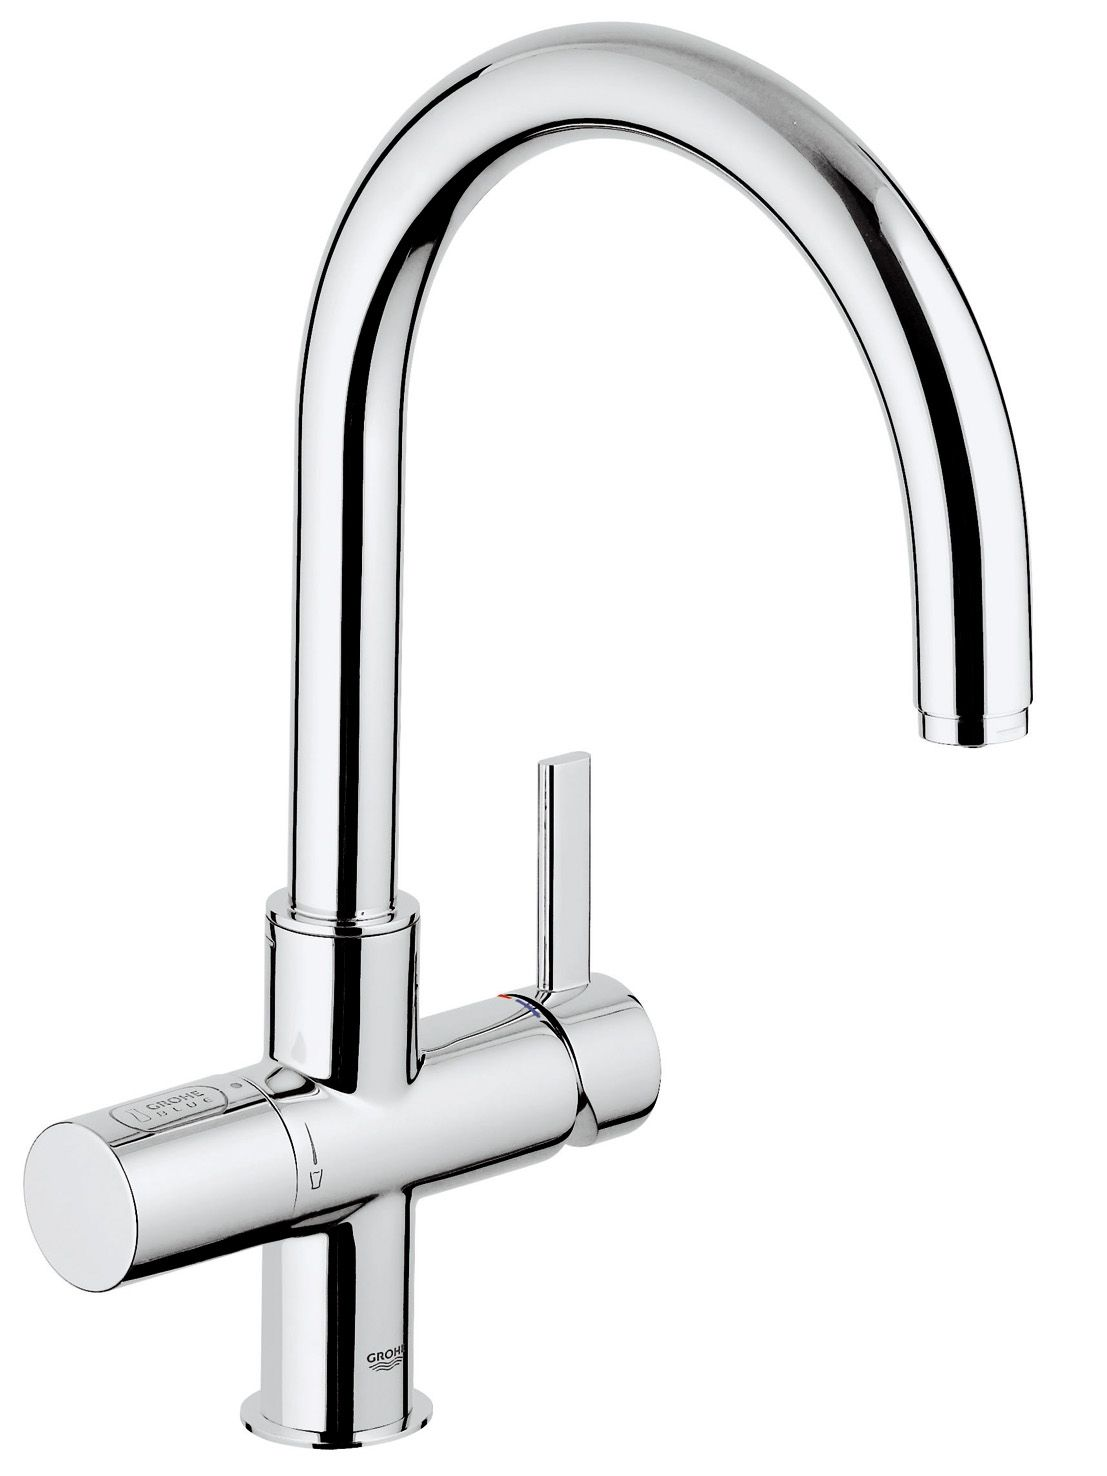 Grohe Blue Alternative grohe blue faucet grohe water enjoyment